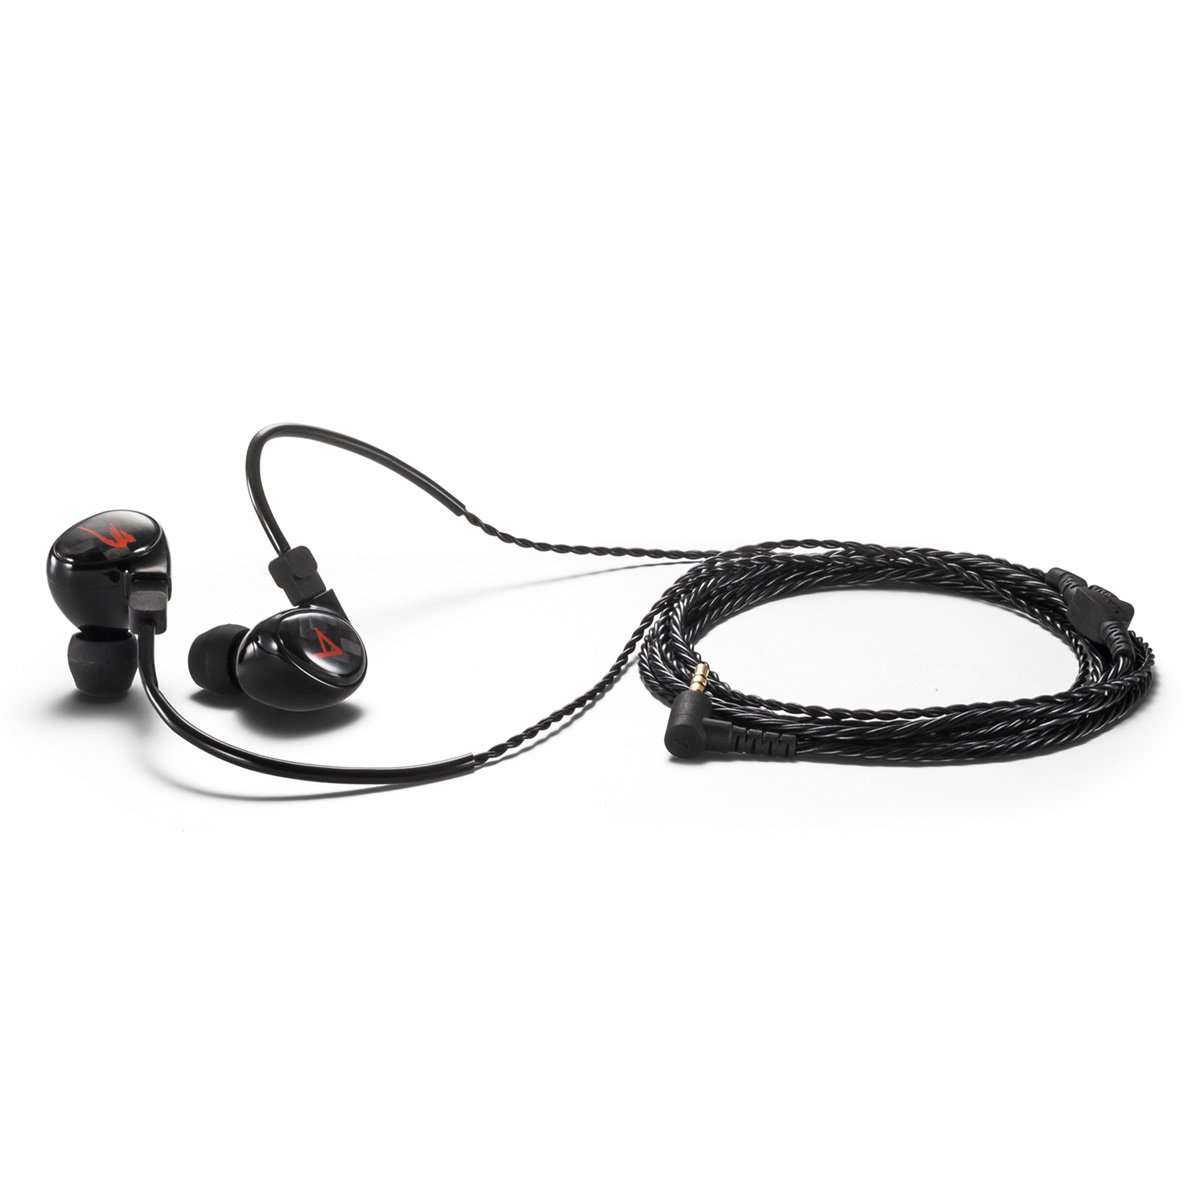 Astell & Kern Michelle Limited In-Ear Headphones (Black) by Astell&Kern